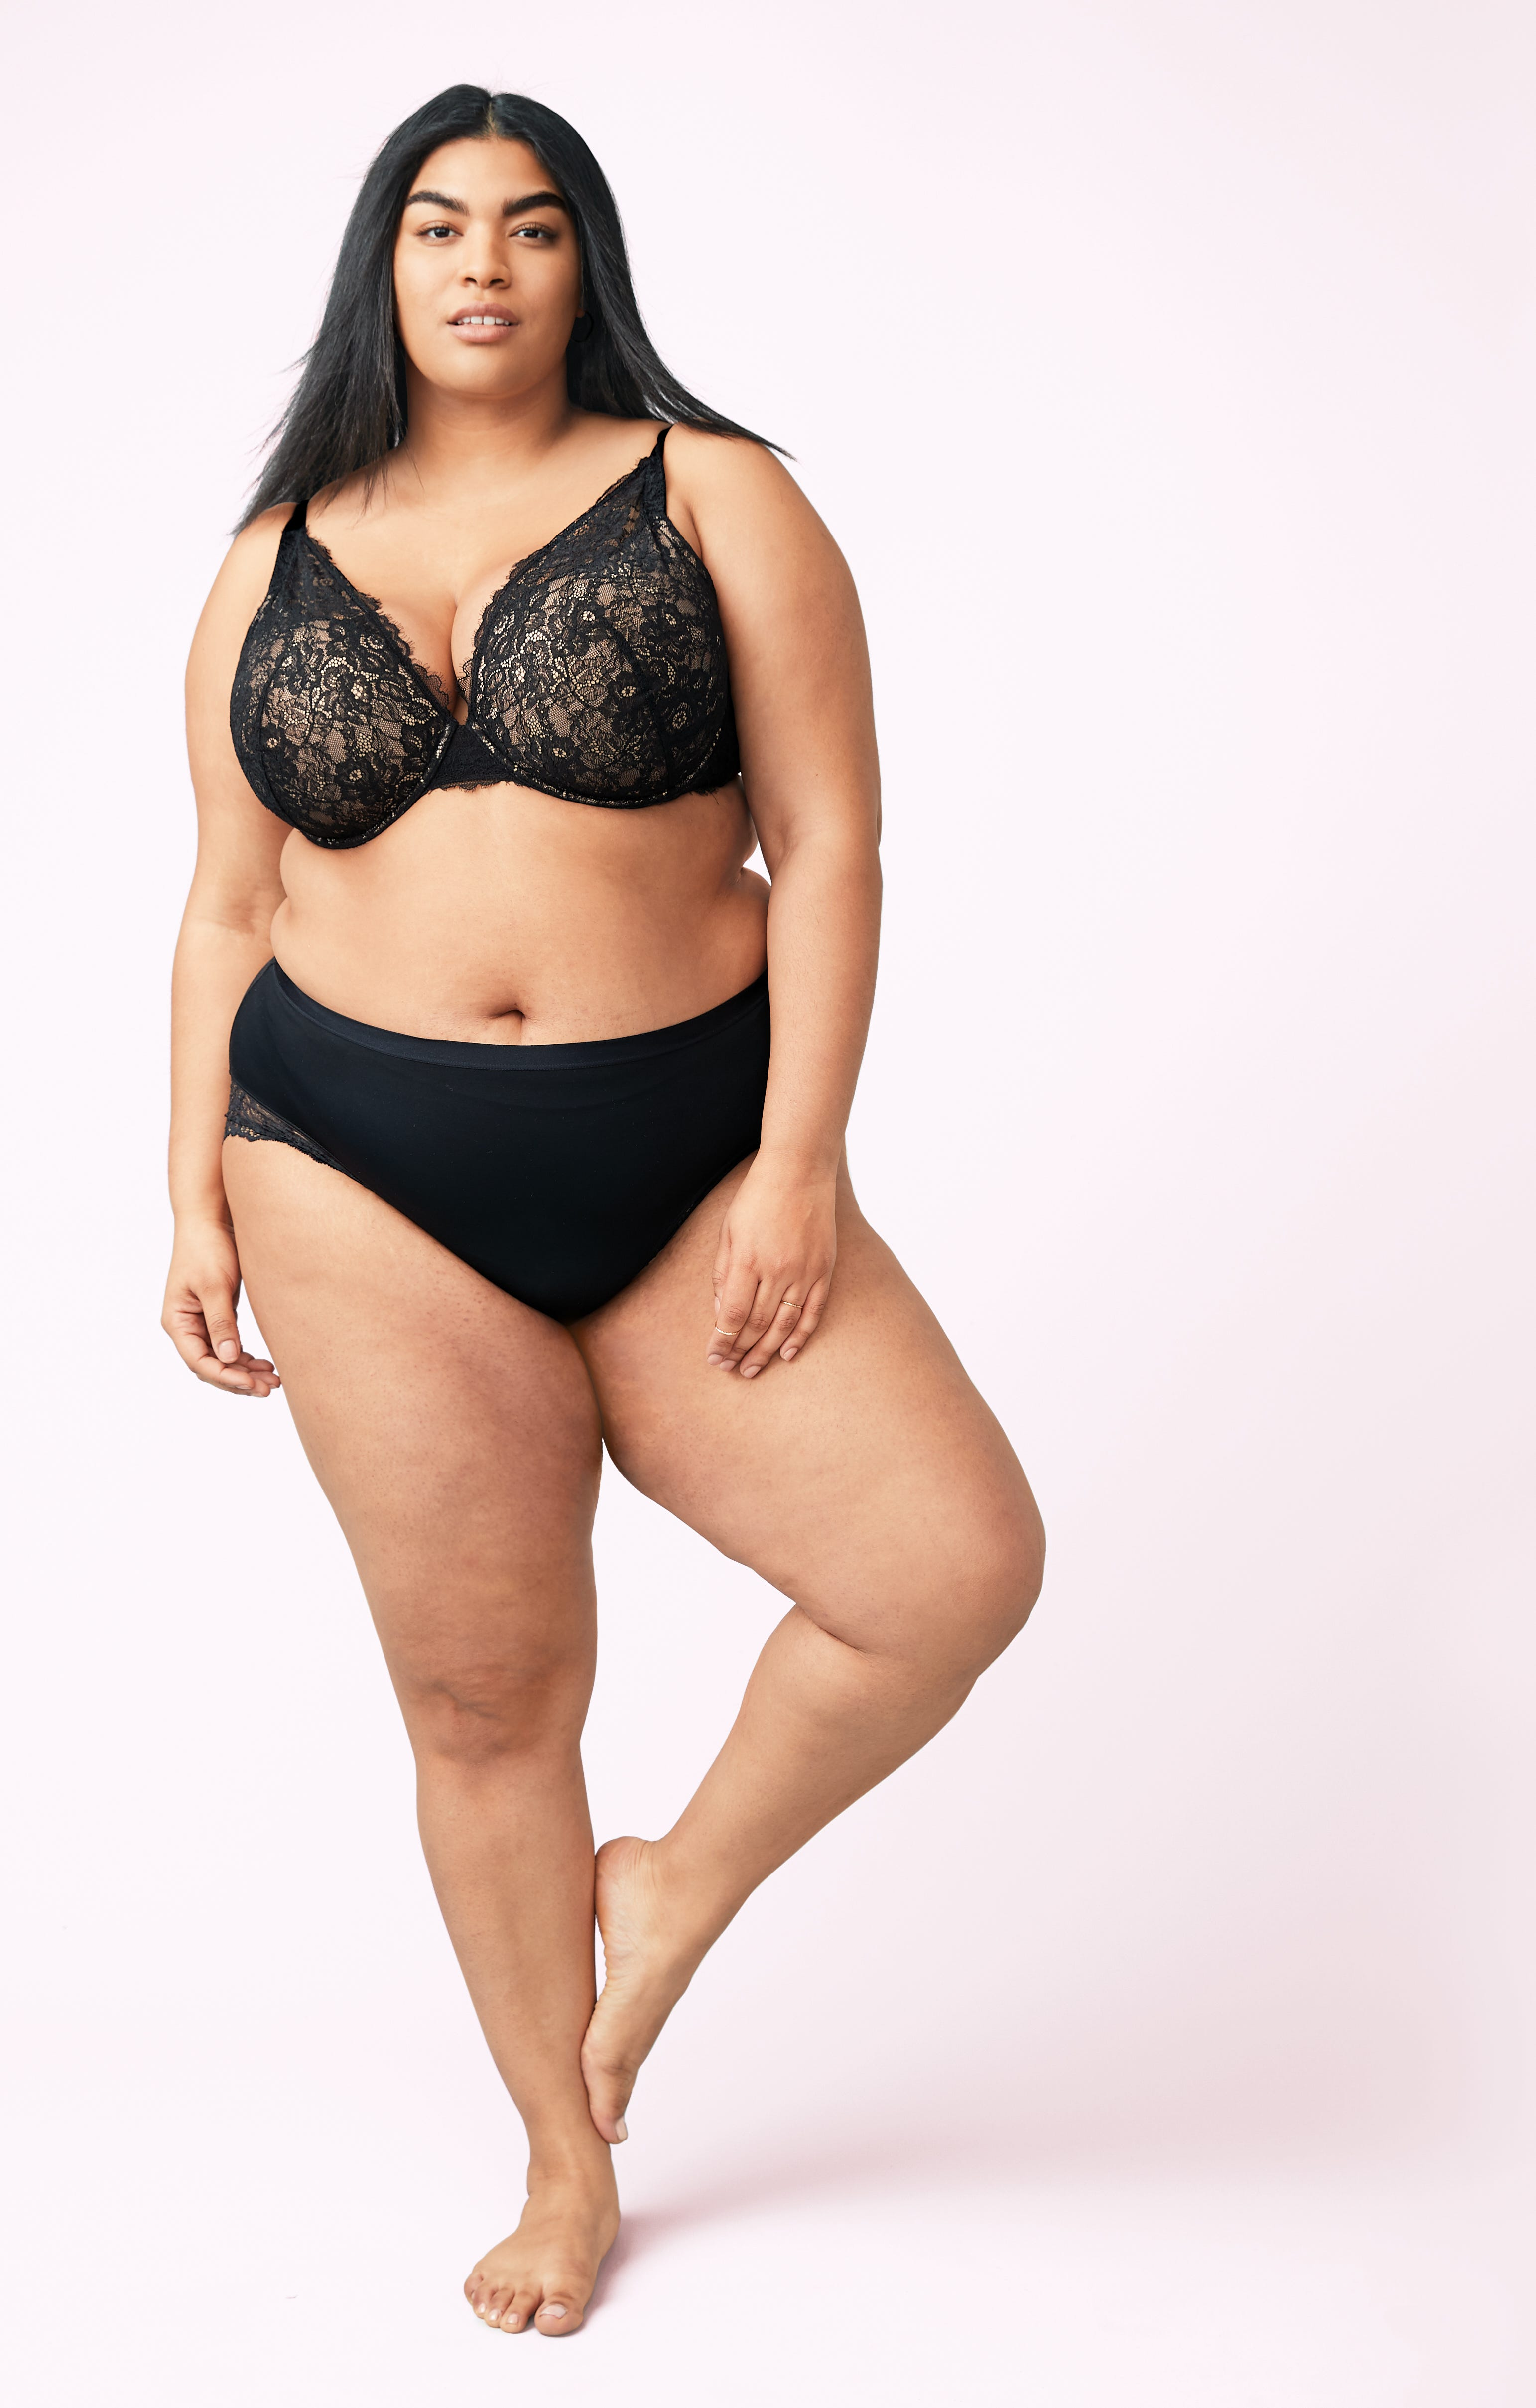 9879fa9a0f Target Launches New Lingerie Lines For All Body Sizes